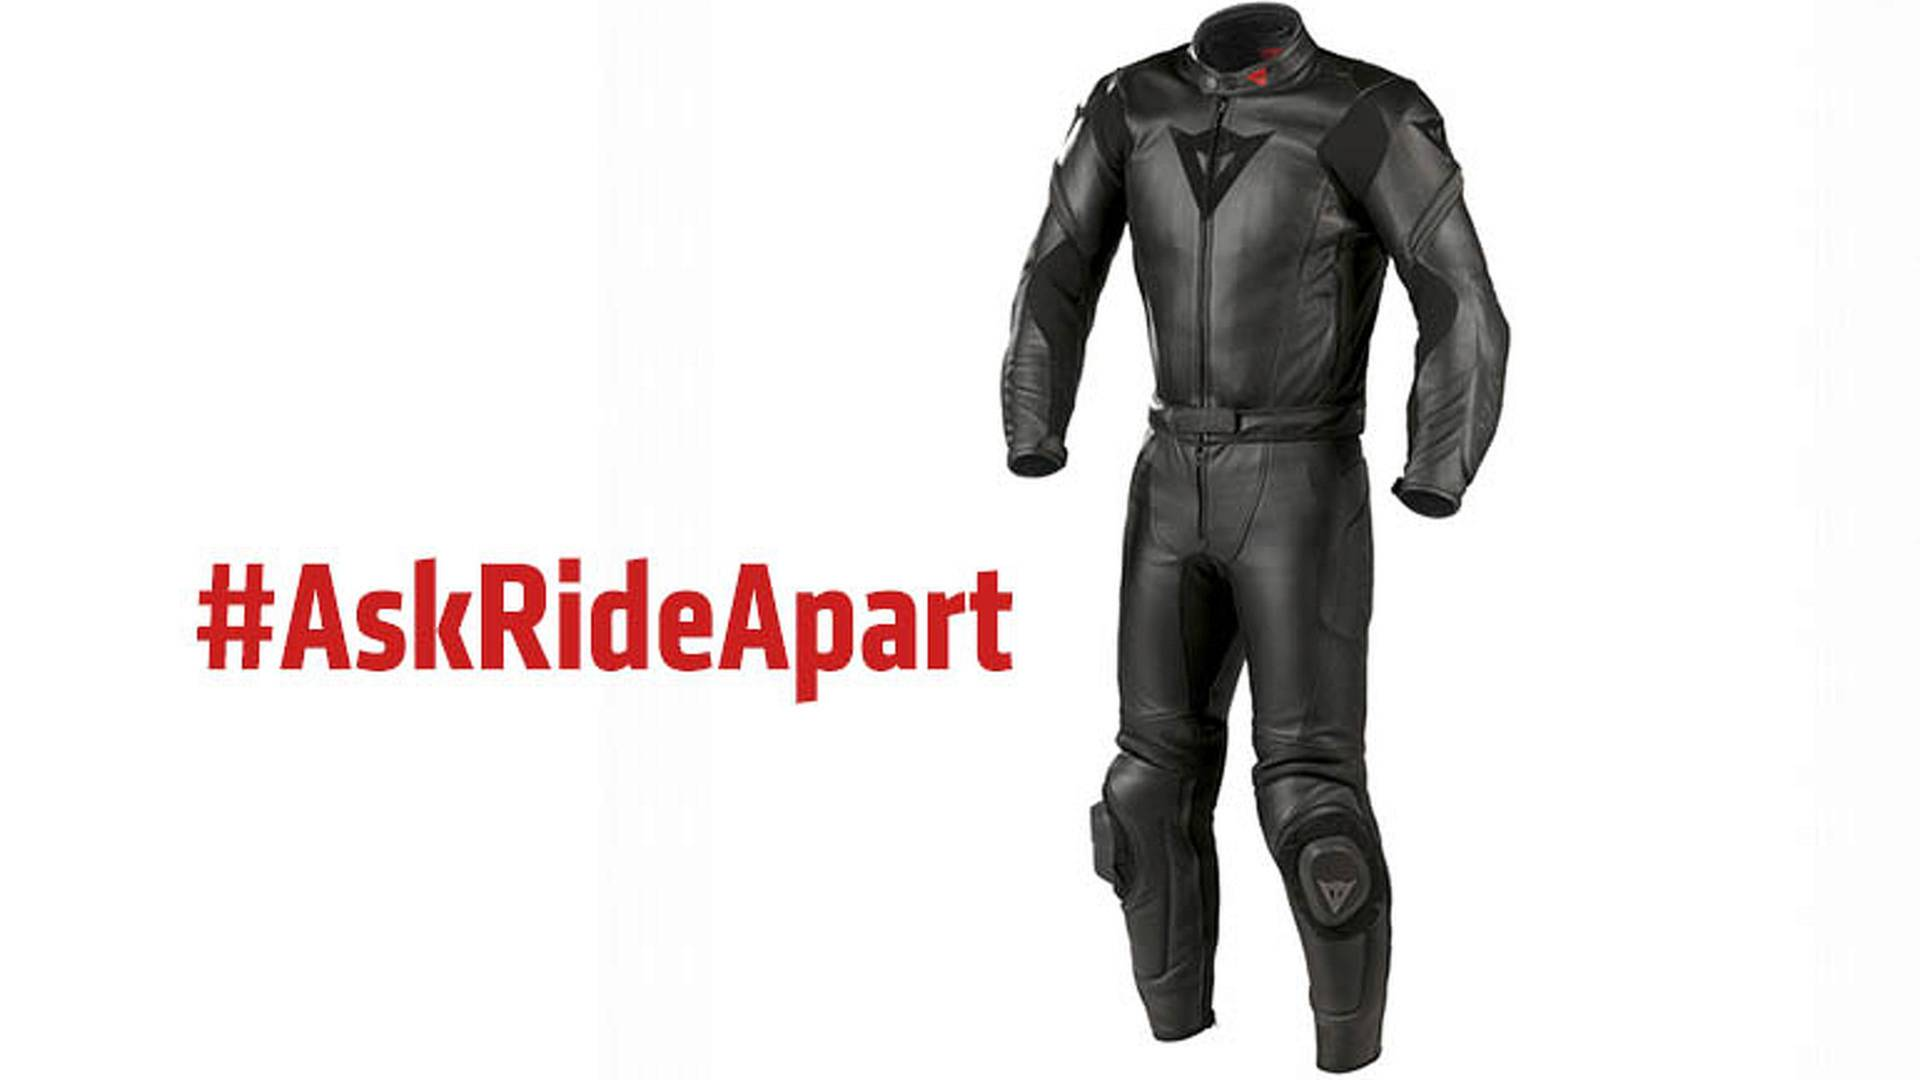 b714bc40e02 Ask RideApart: What's The Best All-Around Motorcycle Riding Suit